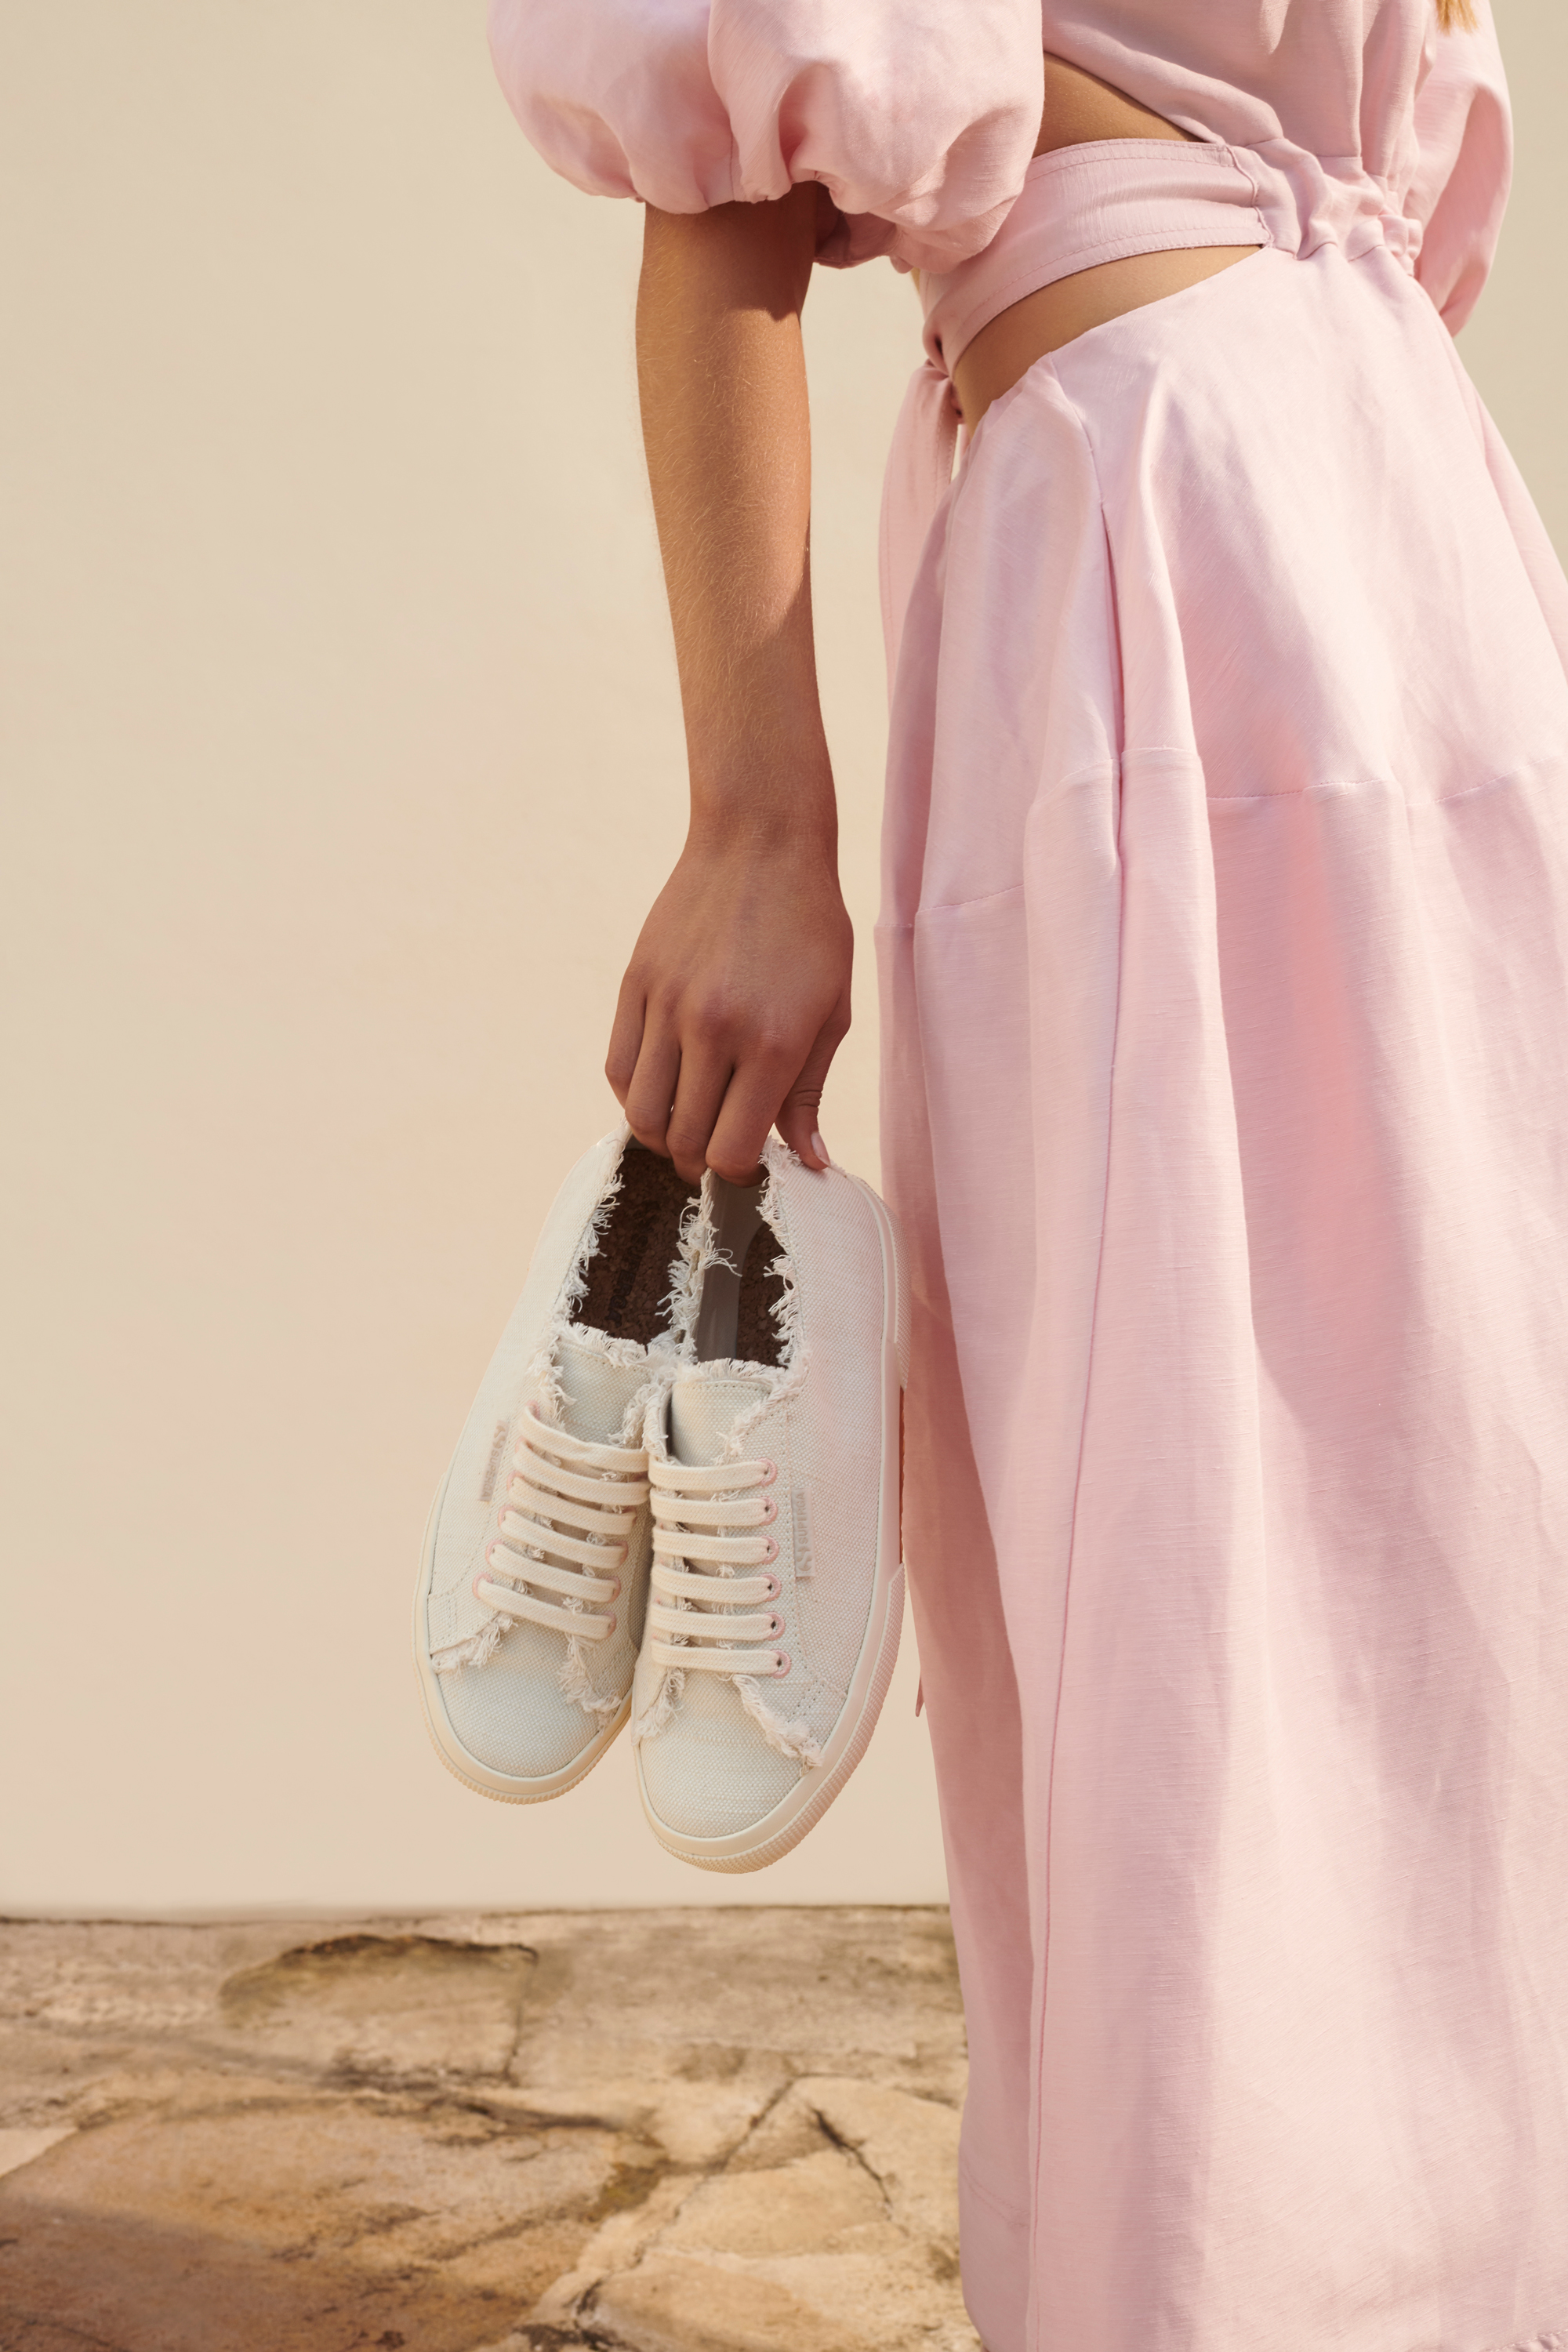 The Superga x Aje High Platform Sneaker with the Mimosa Cut Out Midi Dress